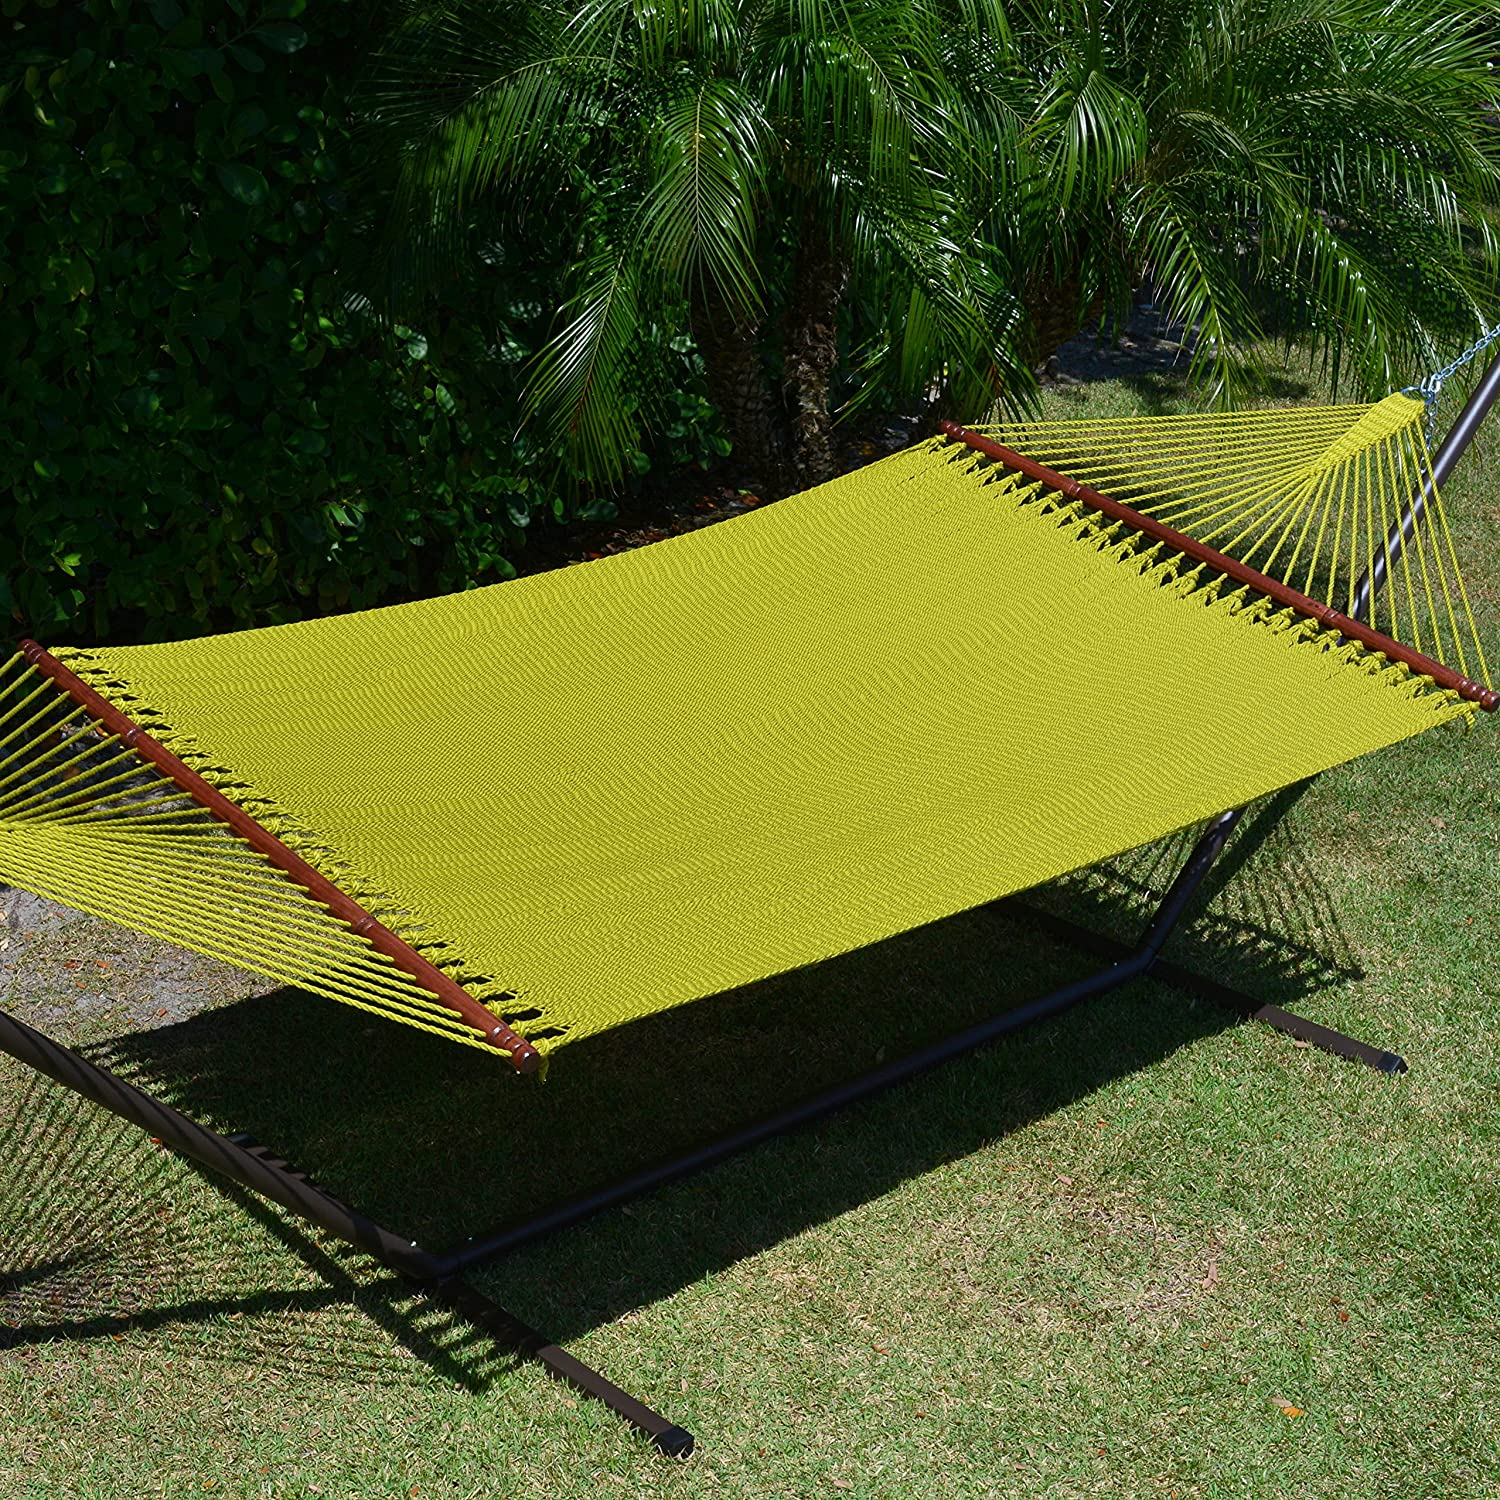 Caribbean Hammocks Jumbo Hammock and 15 ft Tribeam Stand - Olive Green